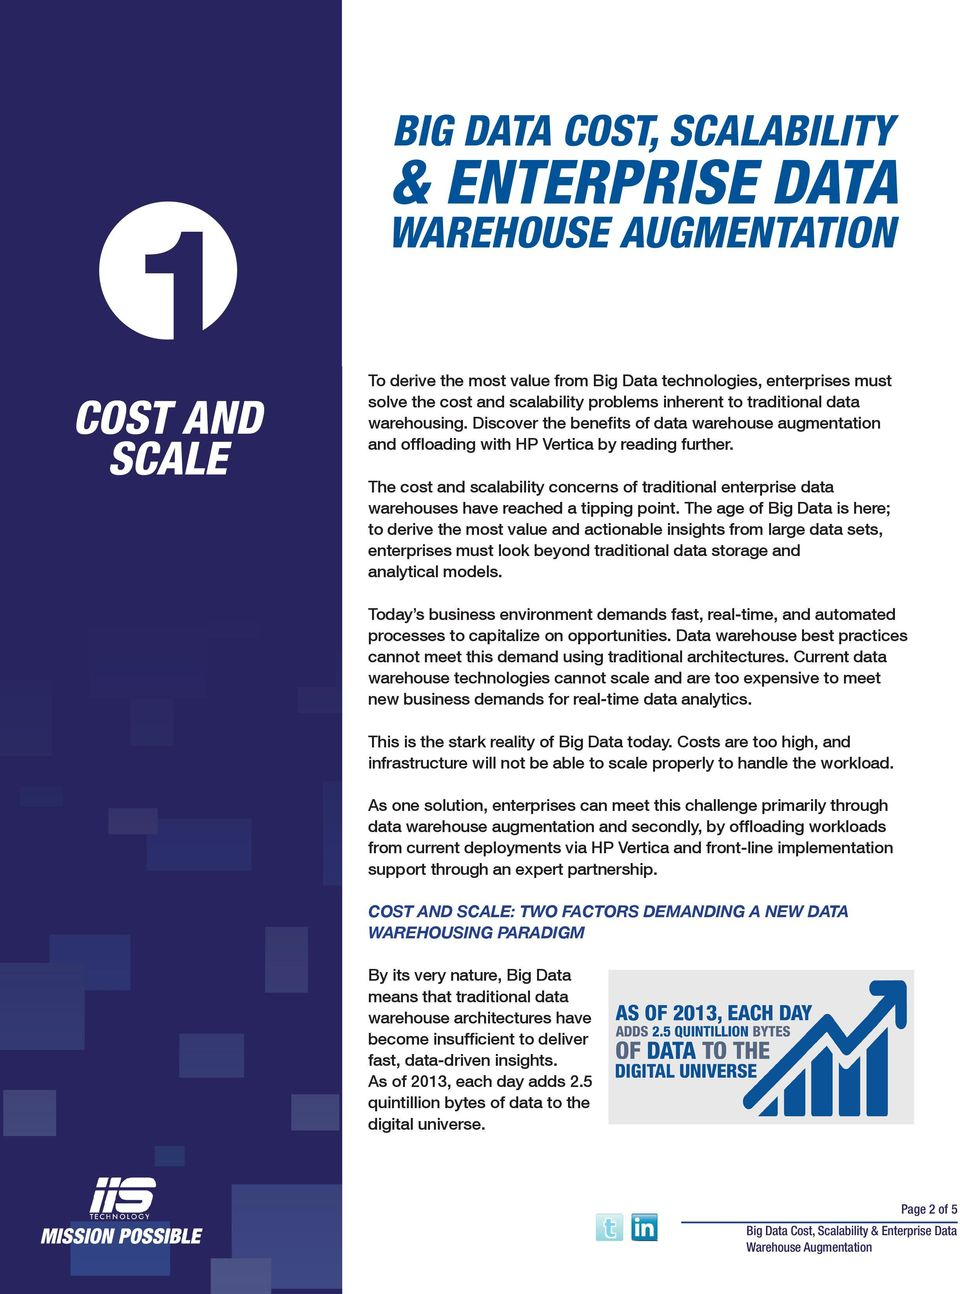 The cost and scalability concerns of traditional enterprise data warehouses have reached a tipping point.